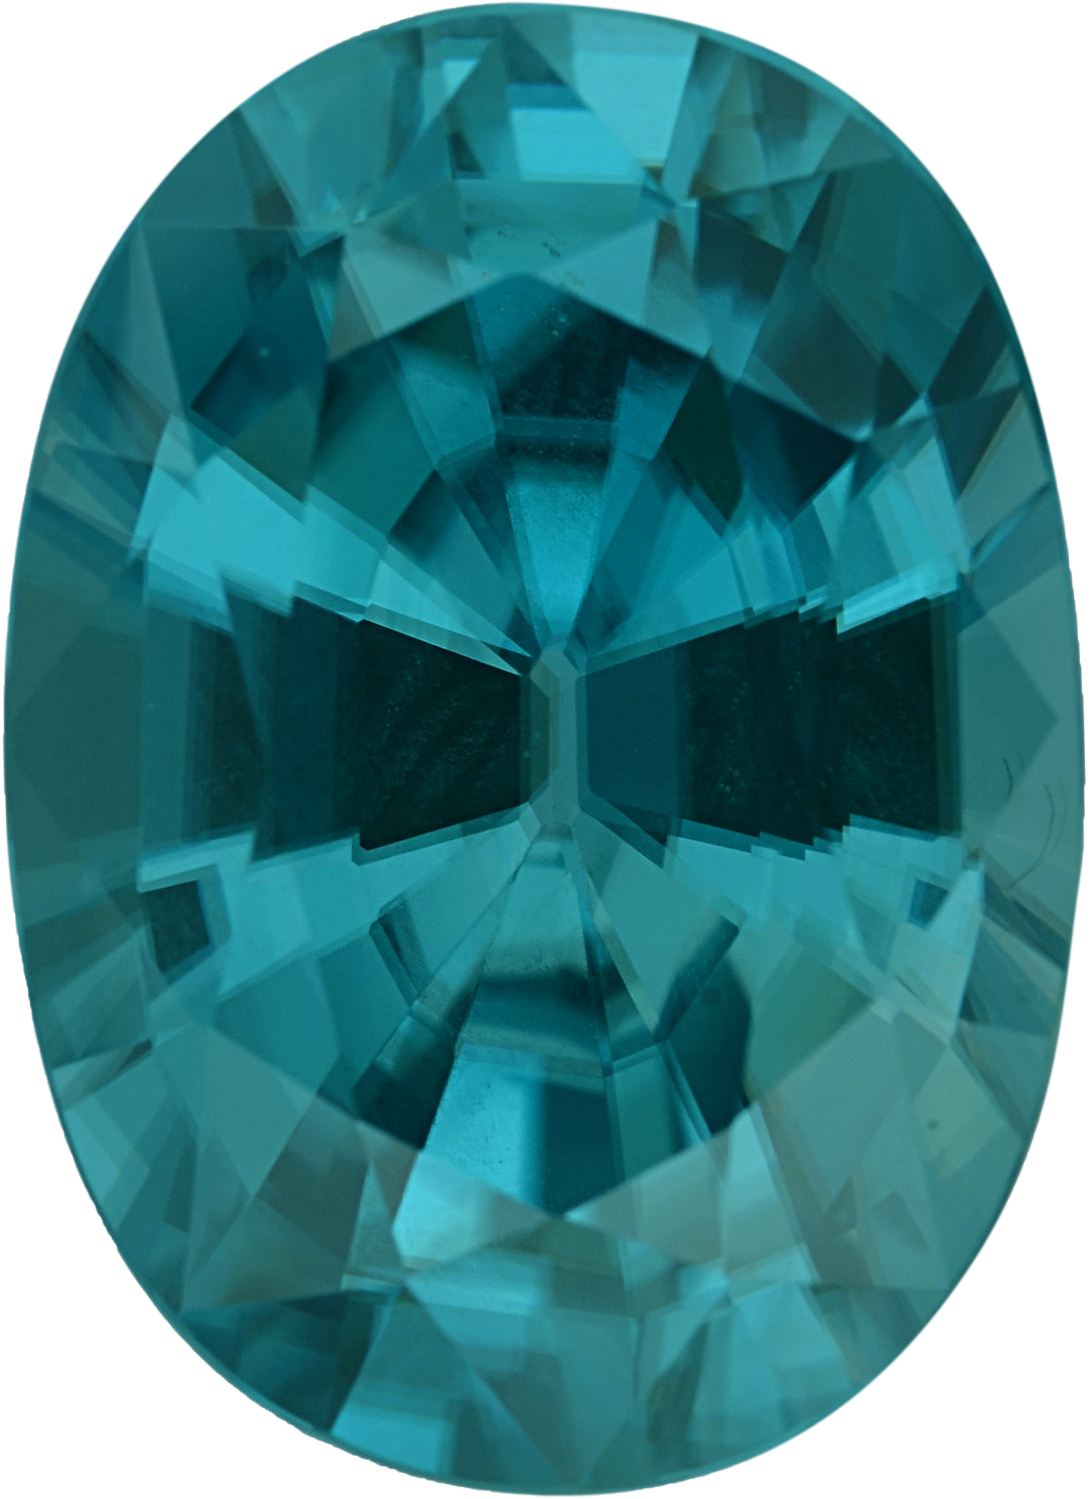 13.12 x 9.5 mm, Zircon Loose Gemstone in Oval Cut, 7.53 carats